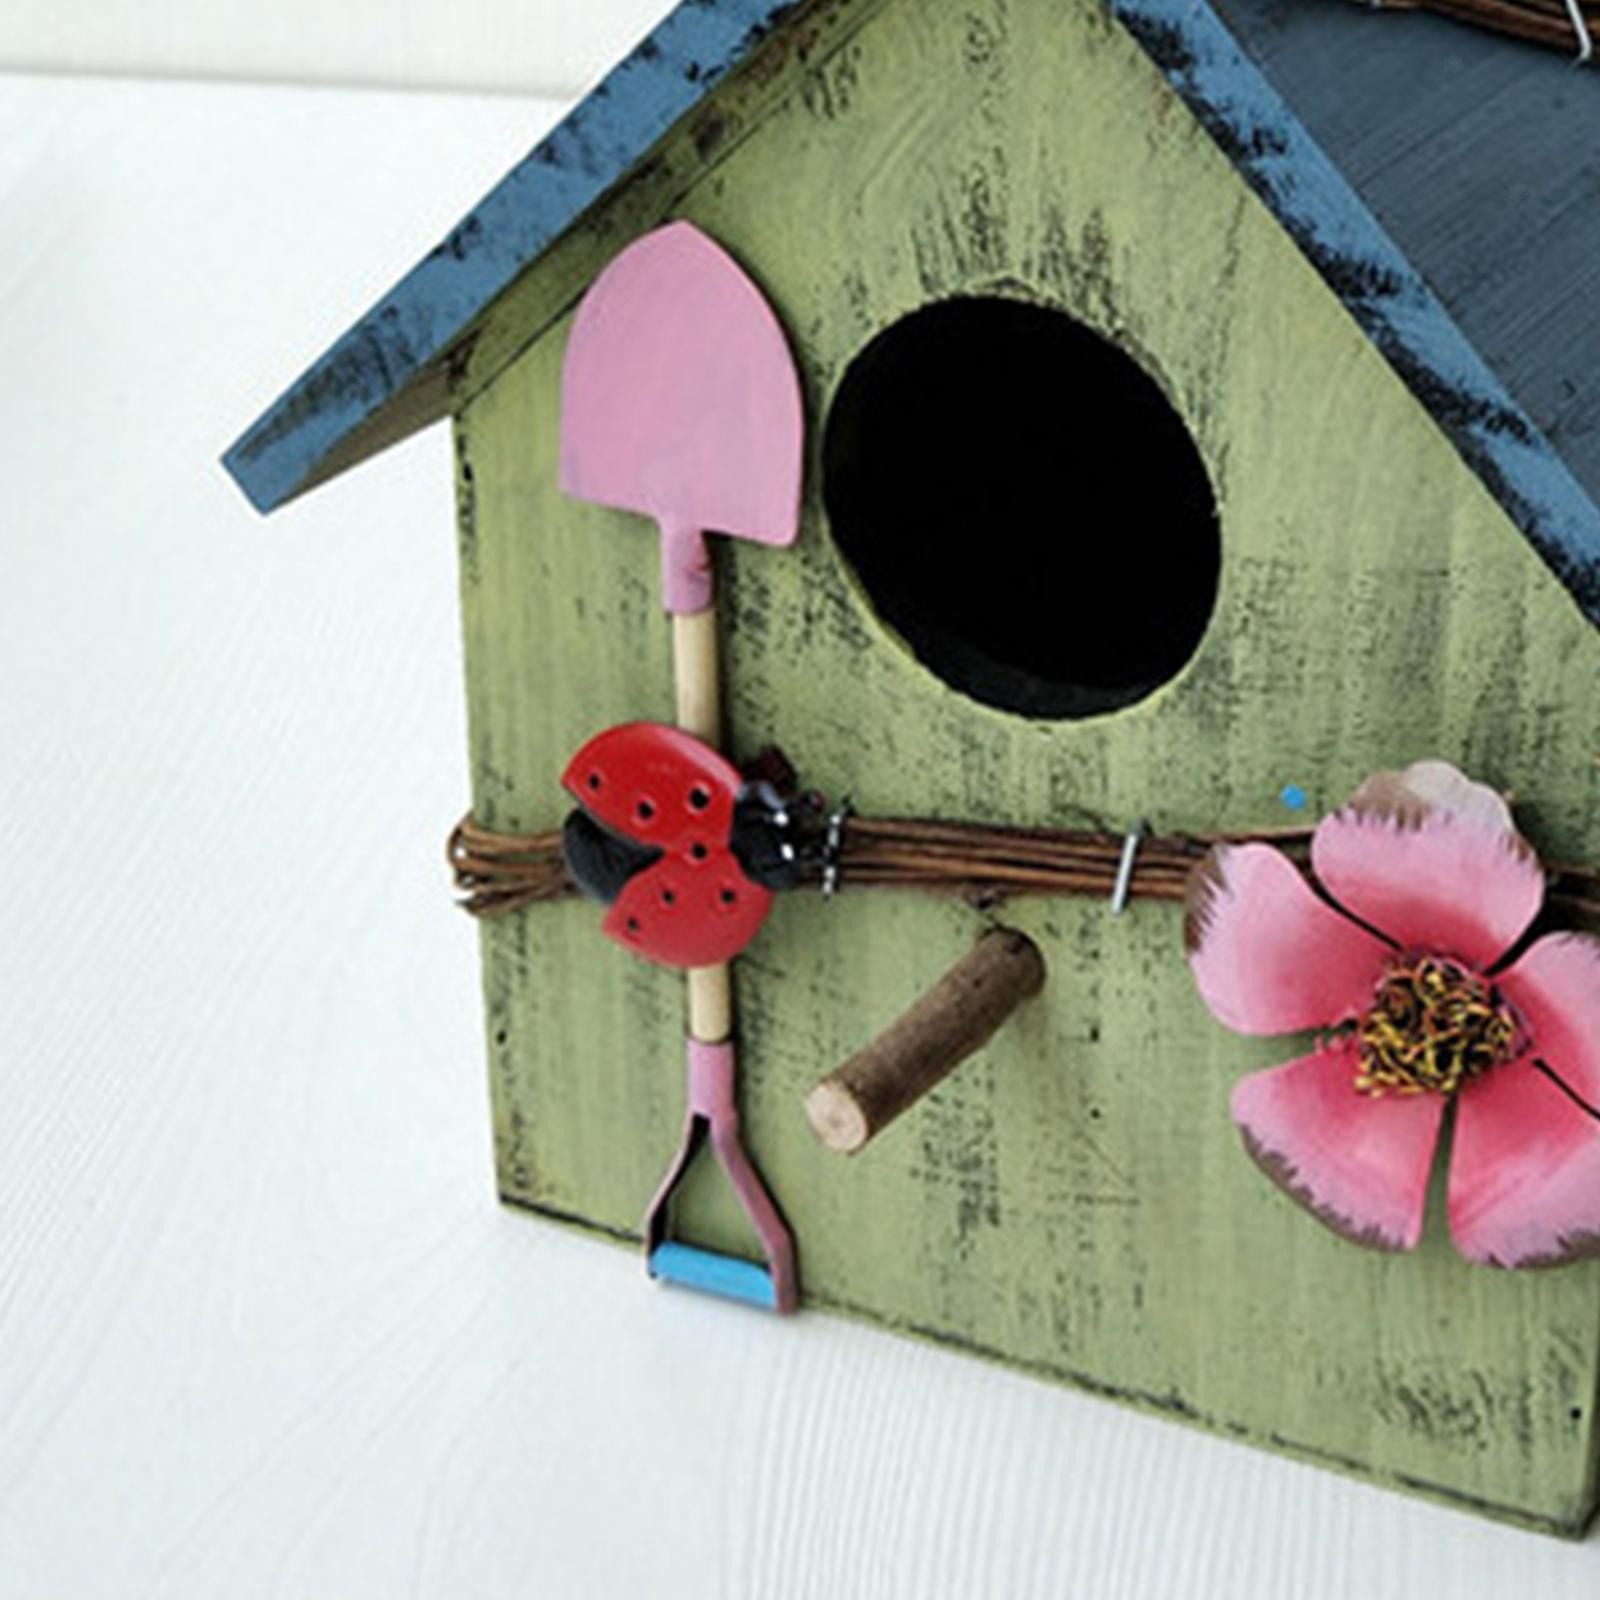 thumbnail 15 - Antique Hand Painted Wood Birdhouse Decorative Outdoor Bird House Garden